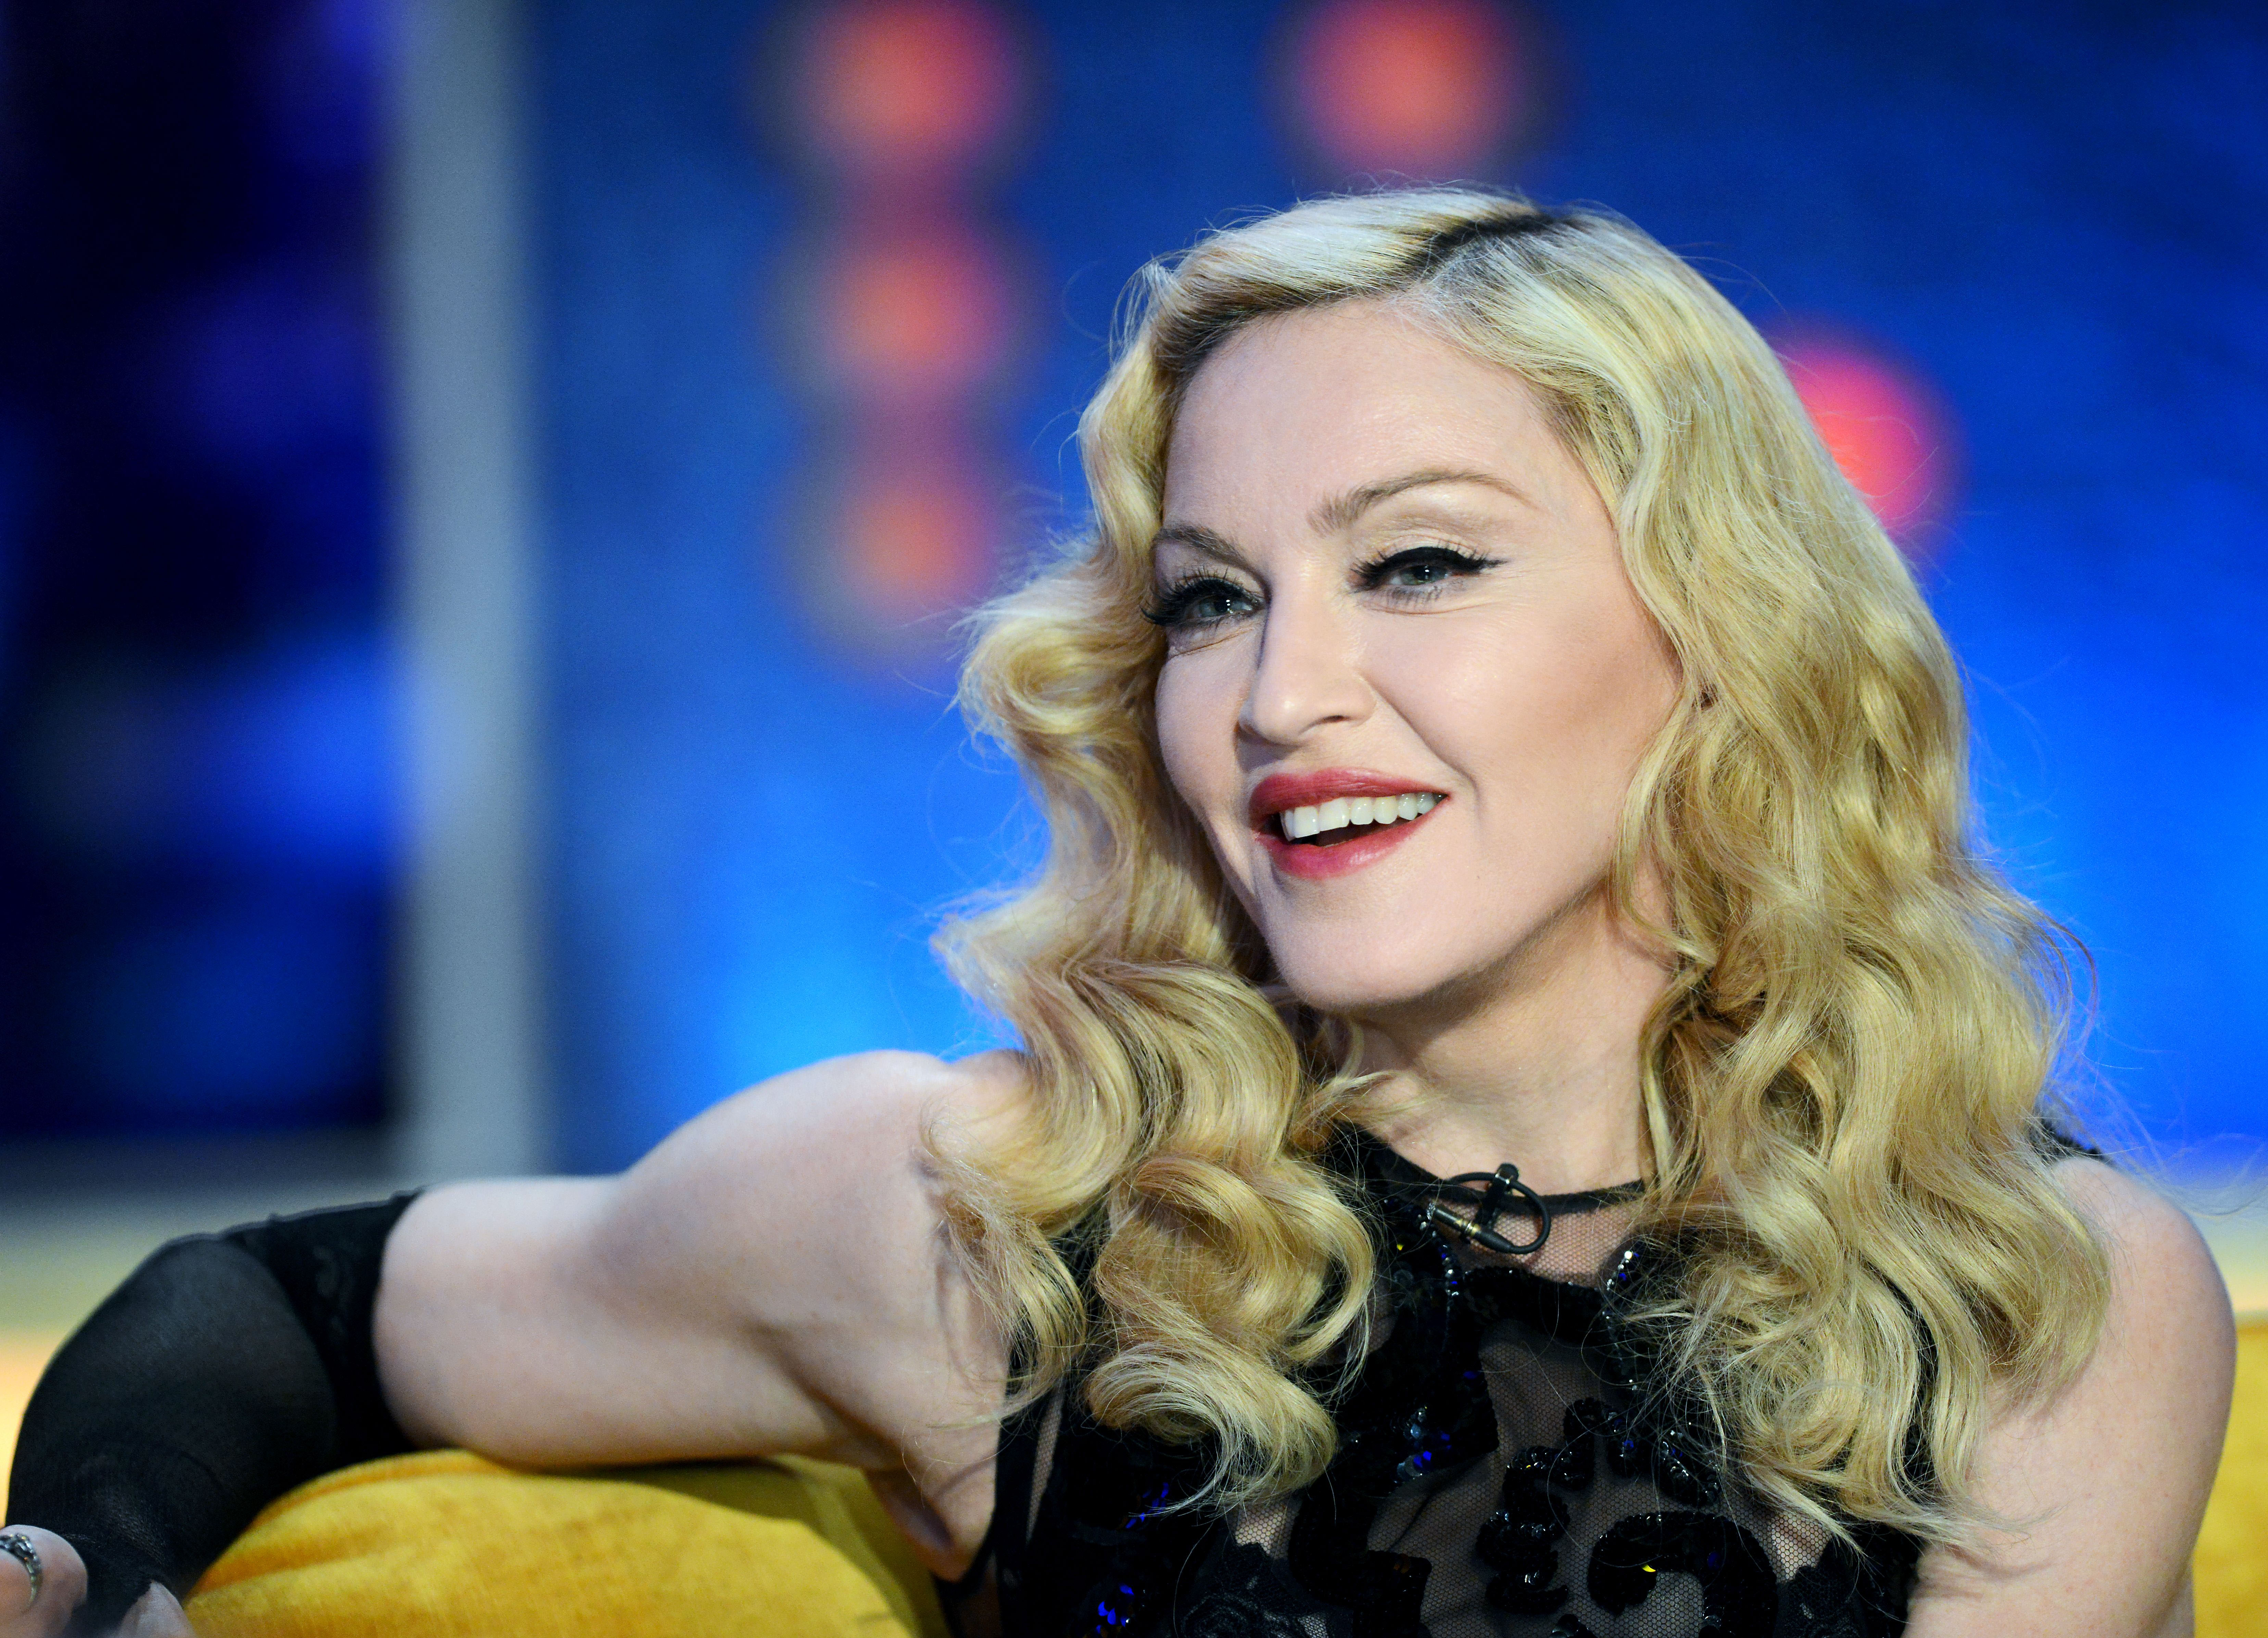 EXCLUSIVE -  EDITORIAL USE ONLY / NO MERCHANDISING Mandatory Credit: Photo by Dave Hogan/Hotsauce/REX (4462483f) Madonna 'The Jonathan Ross Show - Madonna Special' TV Programme, London, Britain. - 14 Mar 2015